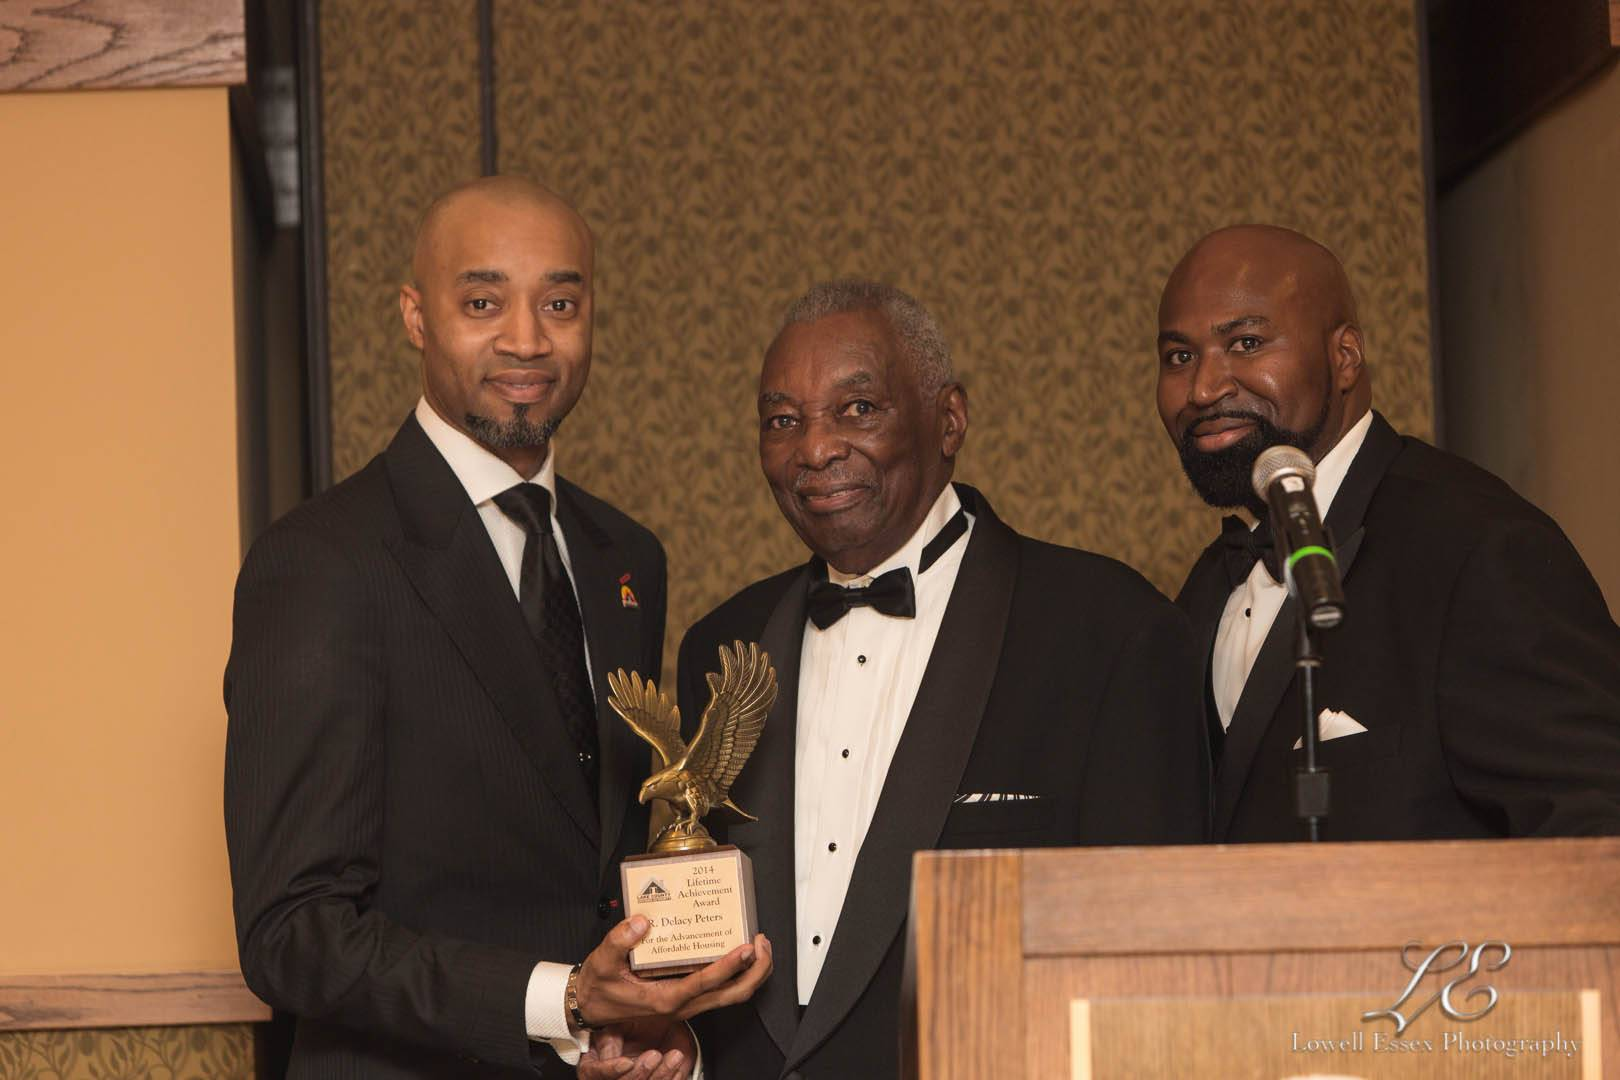 Lifetime Achievement Award Recipient R. Delacy Peters (center) given by Executive Director/CEO David A. Northern, Sr. (right) and Pastor H. Lee Jordan, Jr. (left)LCHA